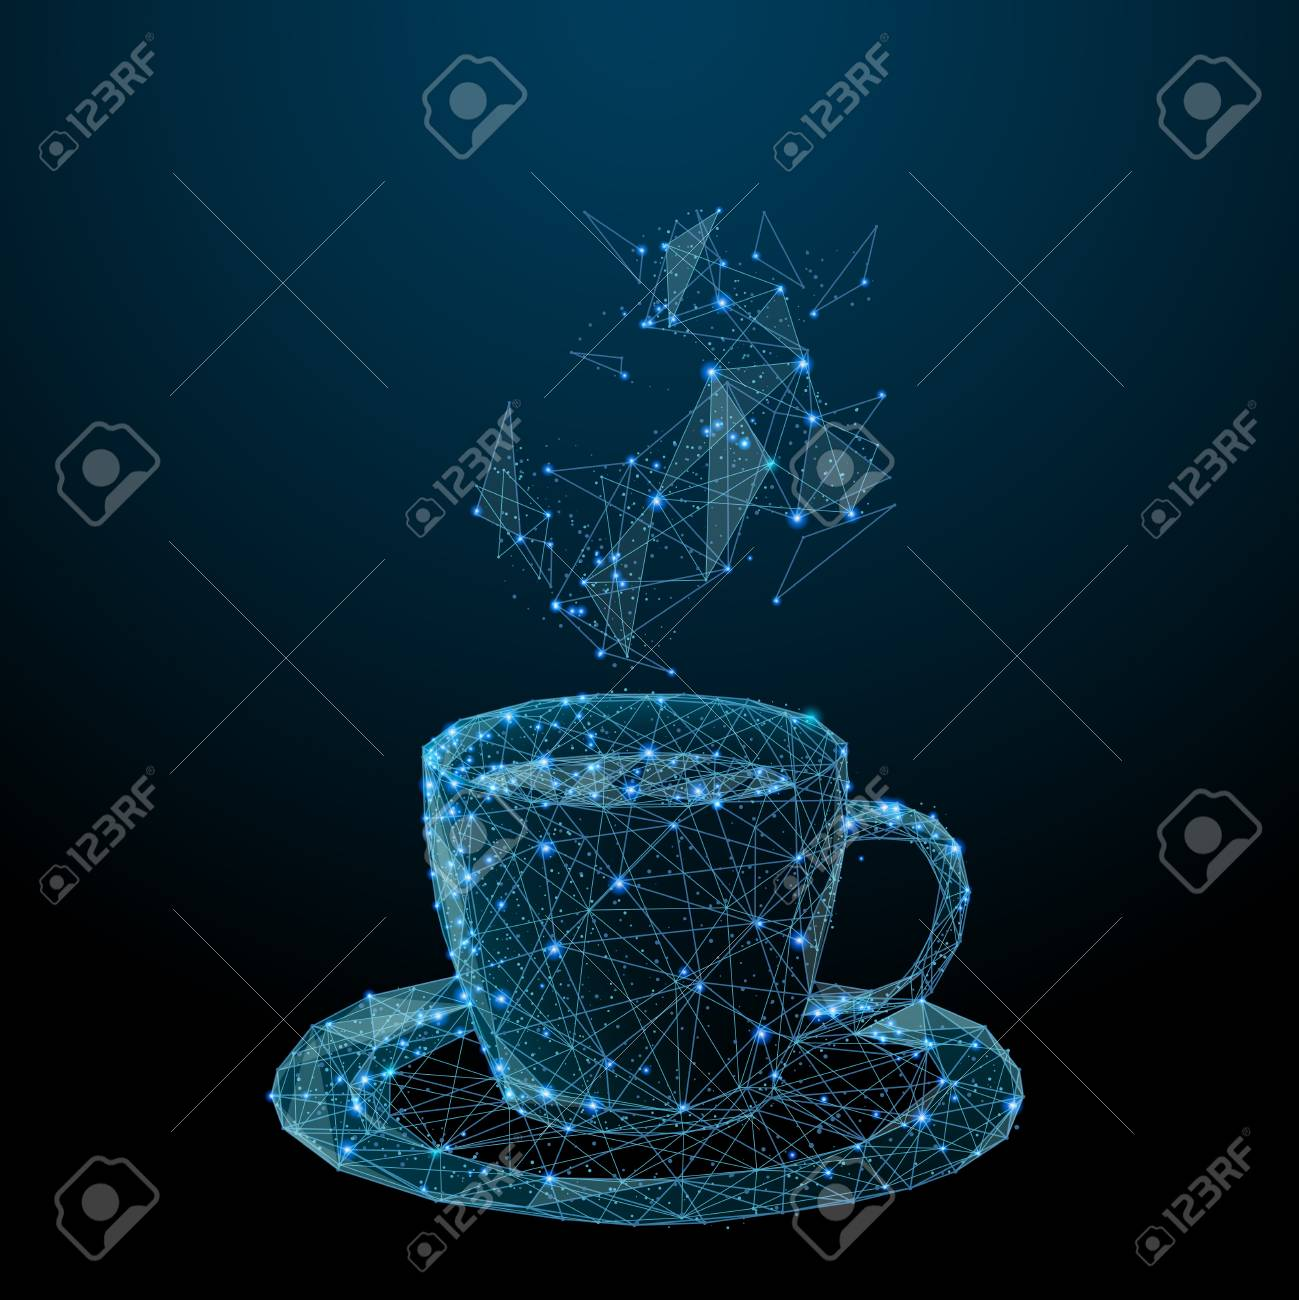 Coffee cup. Tea cup. Vector polygonal image in the form of a starry sky or space, consisting of points, lines, and shapes in the form of stars with destruct shapes. - 115477577